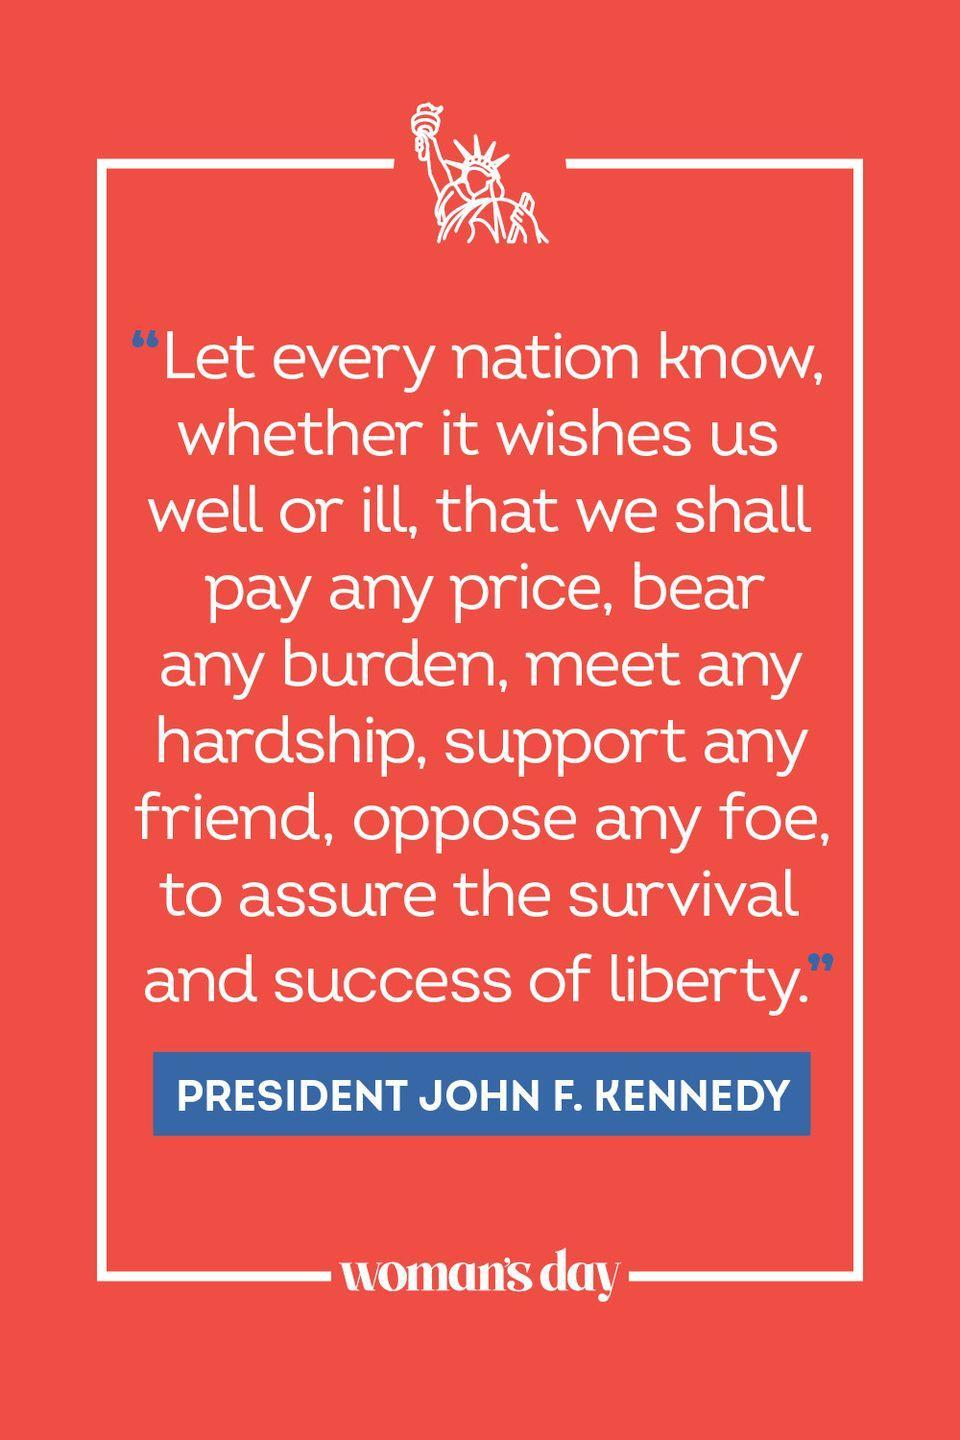 """<p>""""Let every nation know, whether it wishes us well or ill, that we shall pay any price, bear any burden, meet any hardship, support any friend, oppose any foe, to assure the survival and success of liberty."""" </p>"""